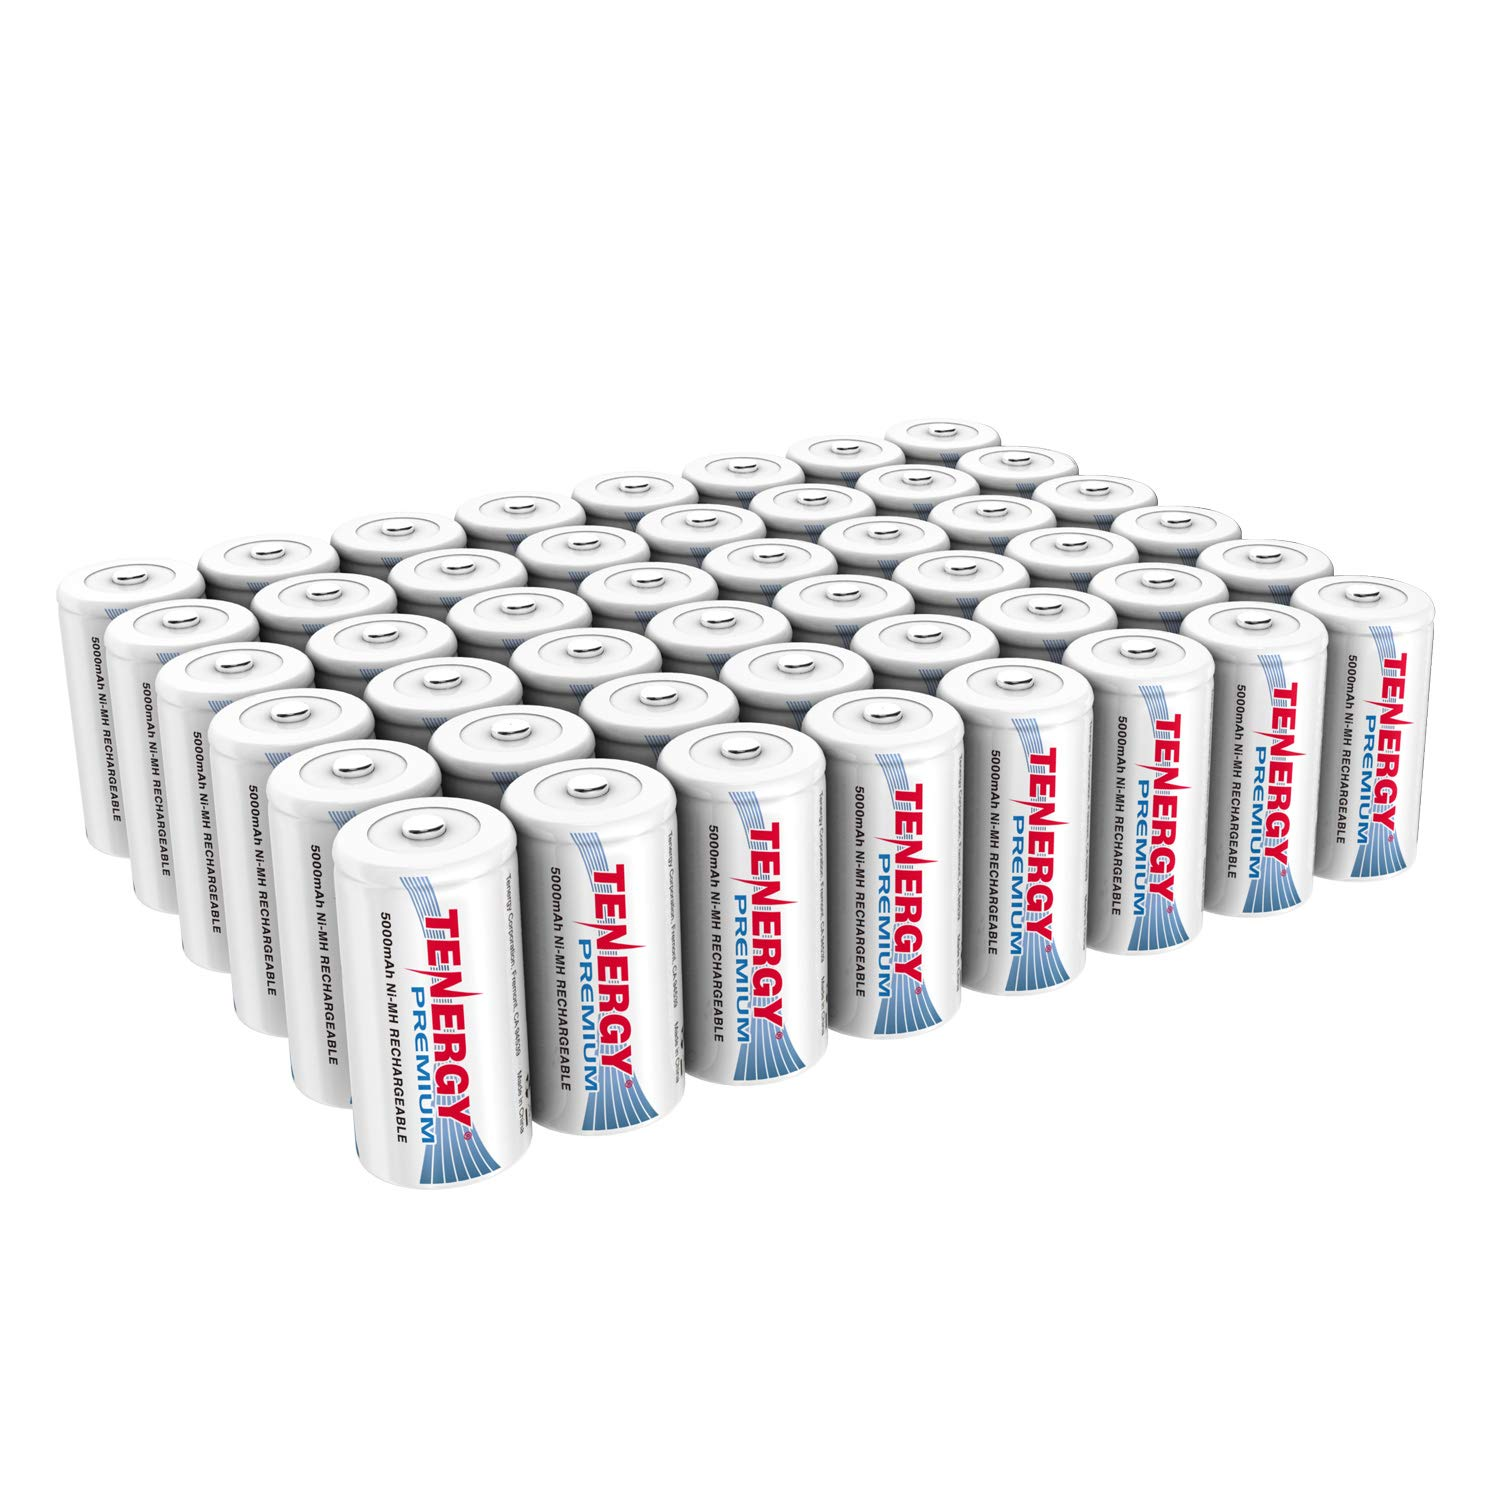 Tenergy Premium Rechargeable C Batteries, High Capacity 5000mAh NiMH C Size Battery, C Cell Battery, 48-Pack